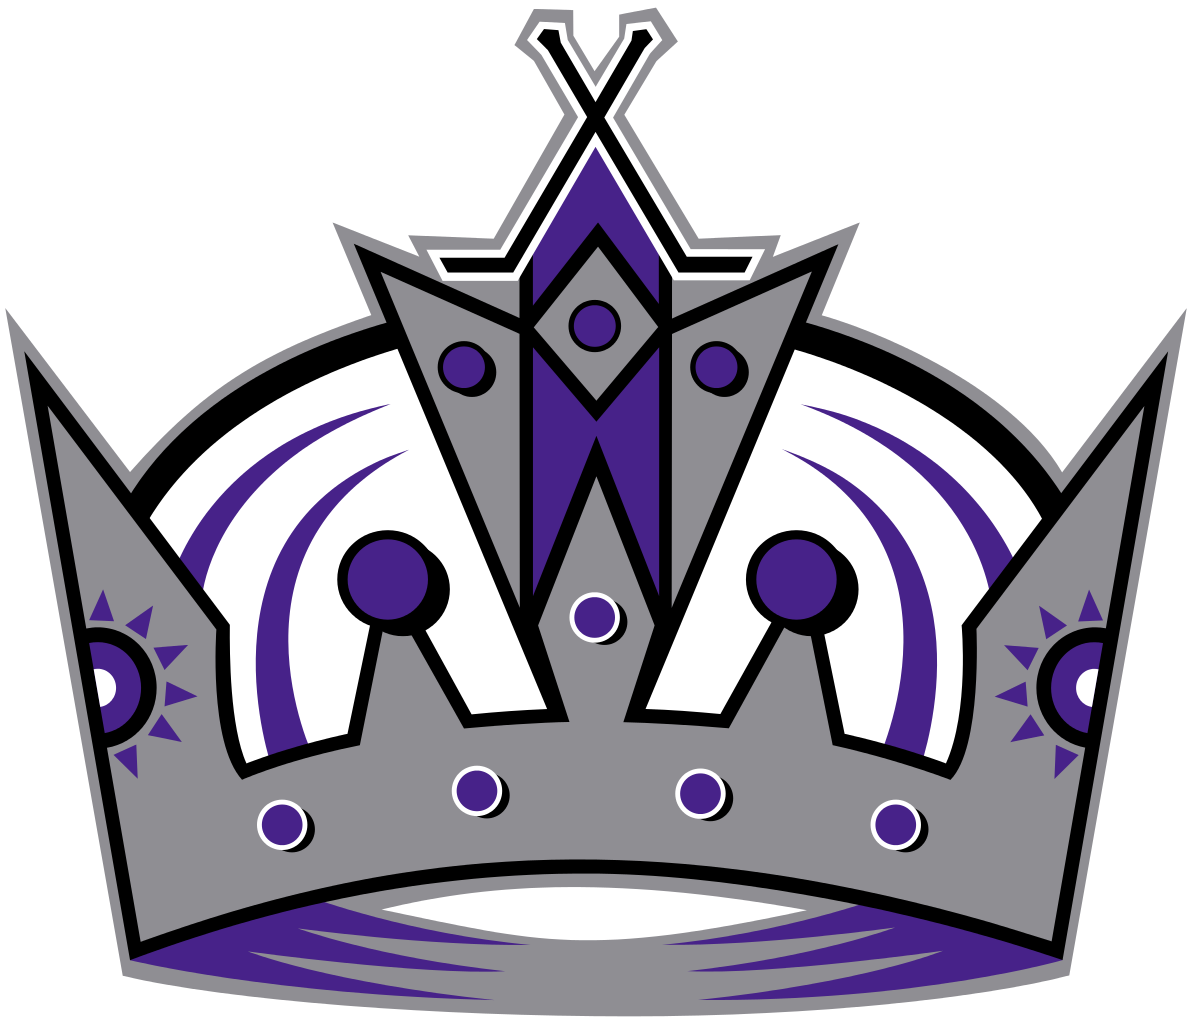 File:Los Angeles Kings.svg - Wikipedia, the free encyclopedia